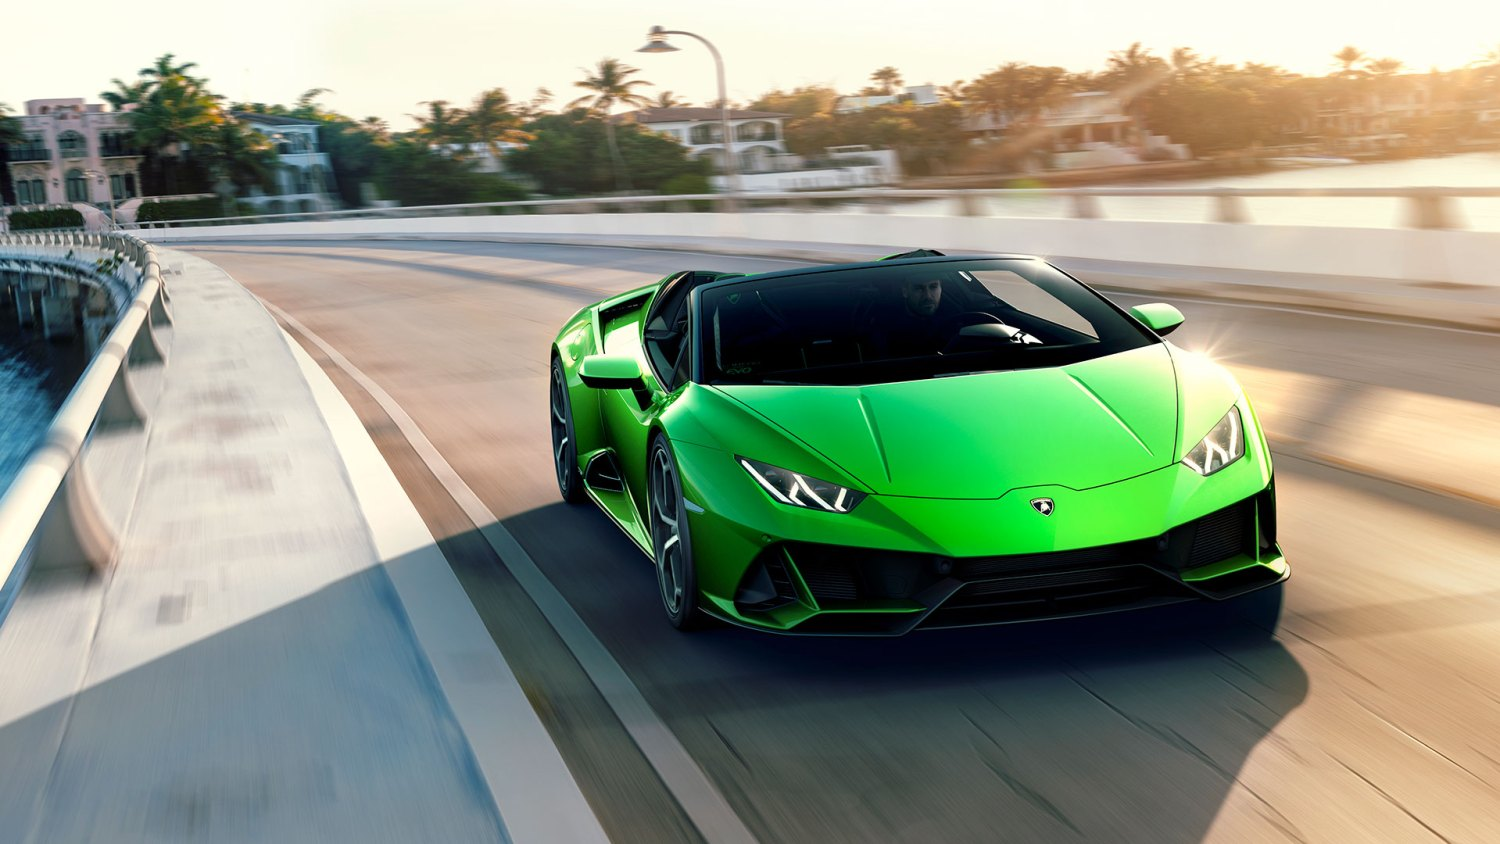 Lamborghini sets new sales records in 2019